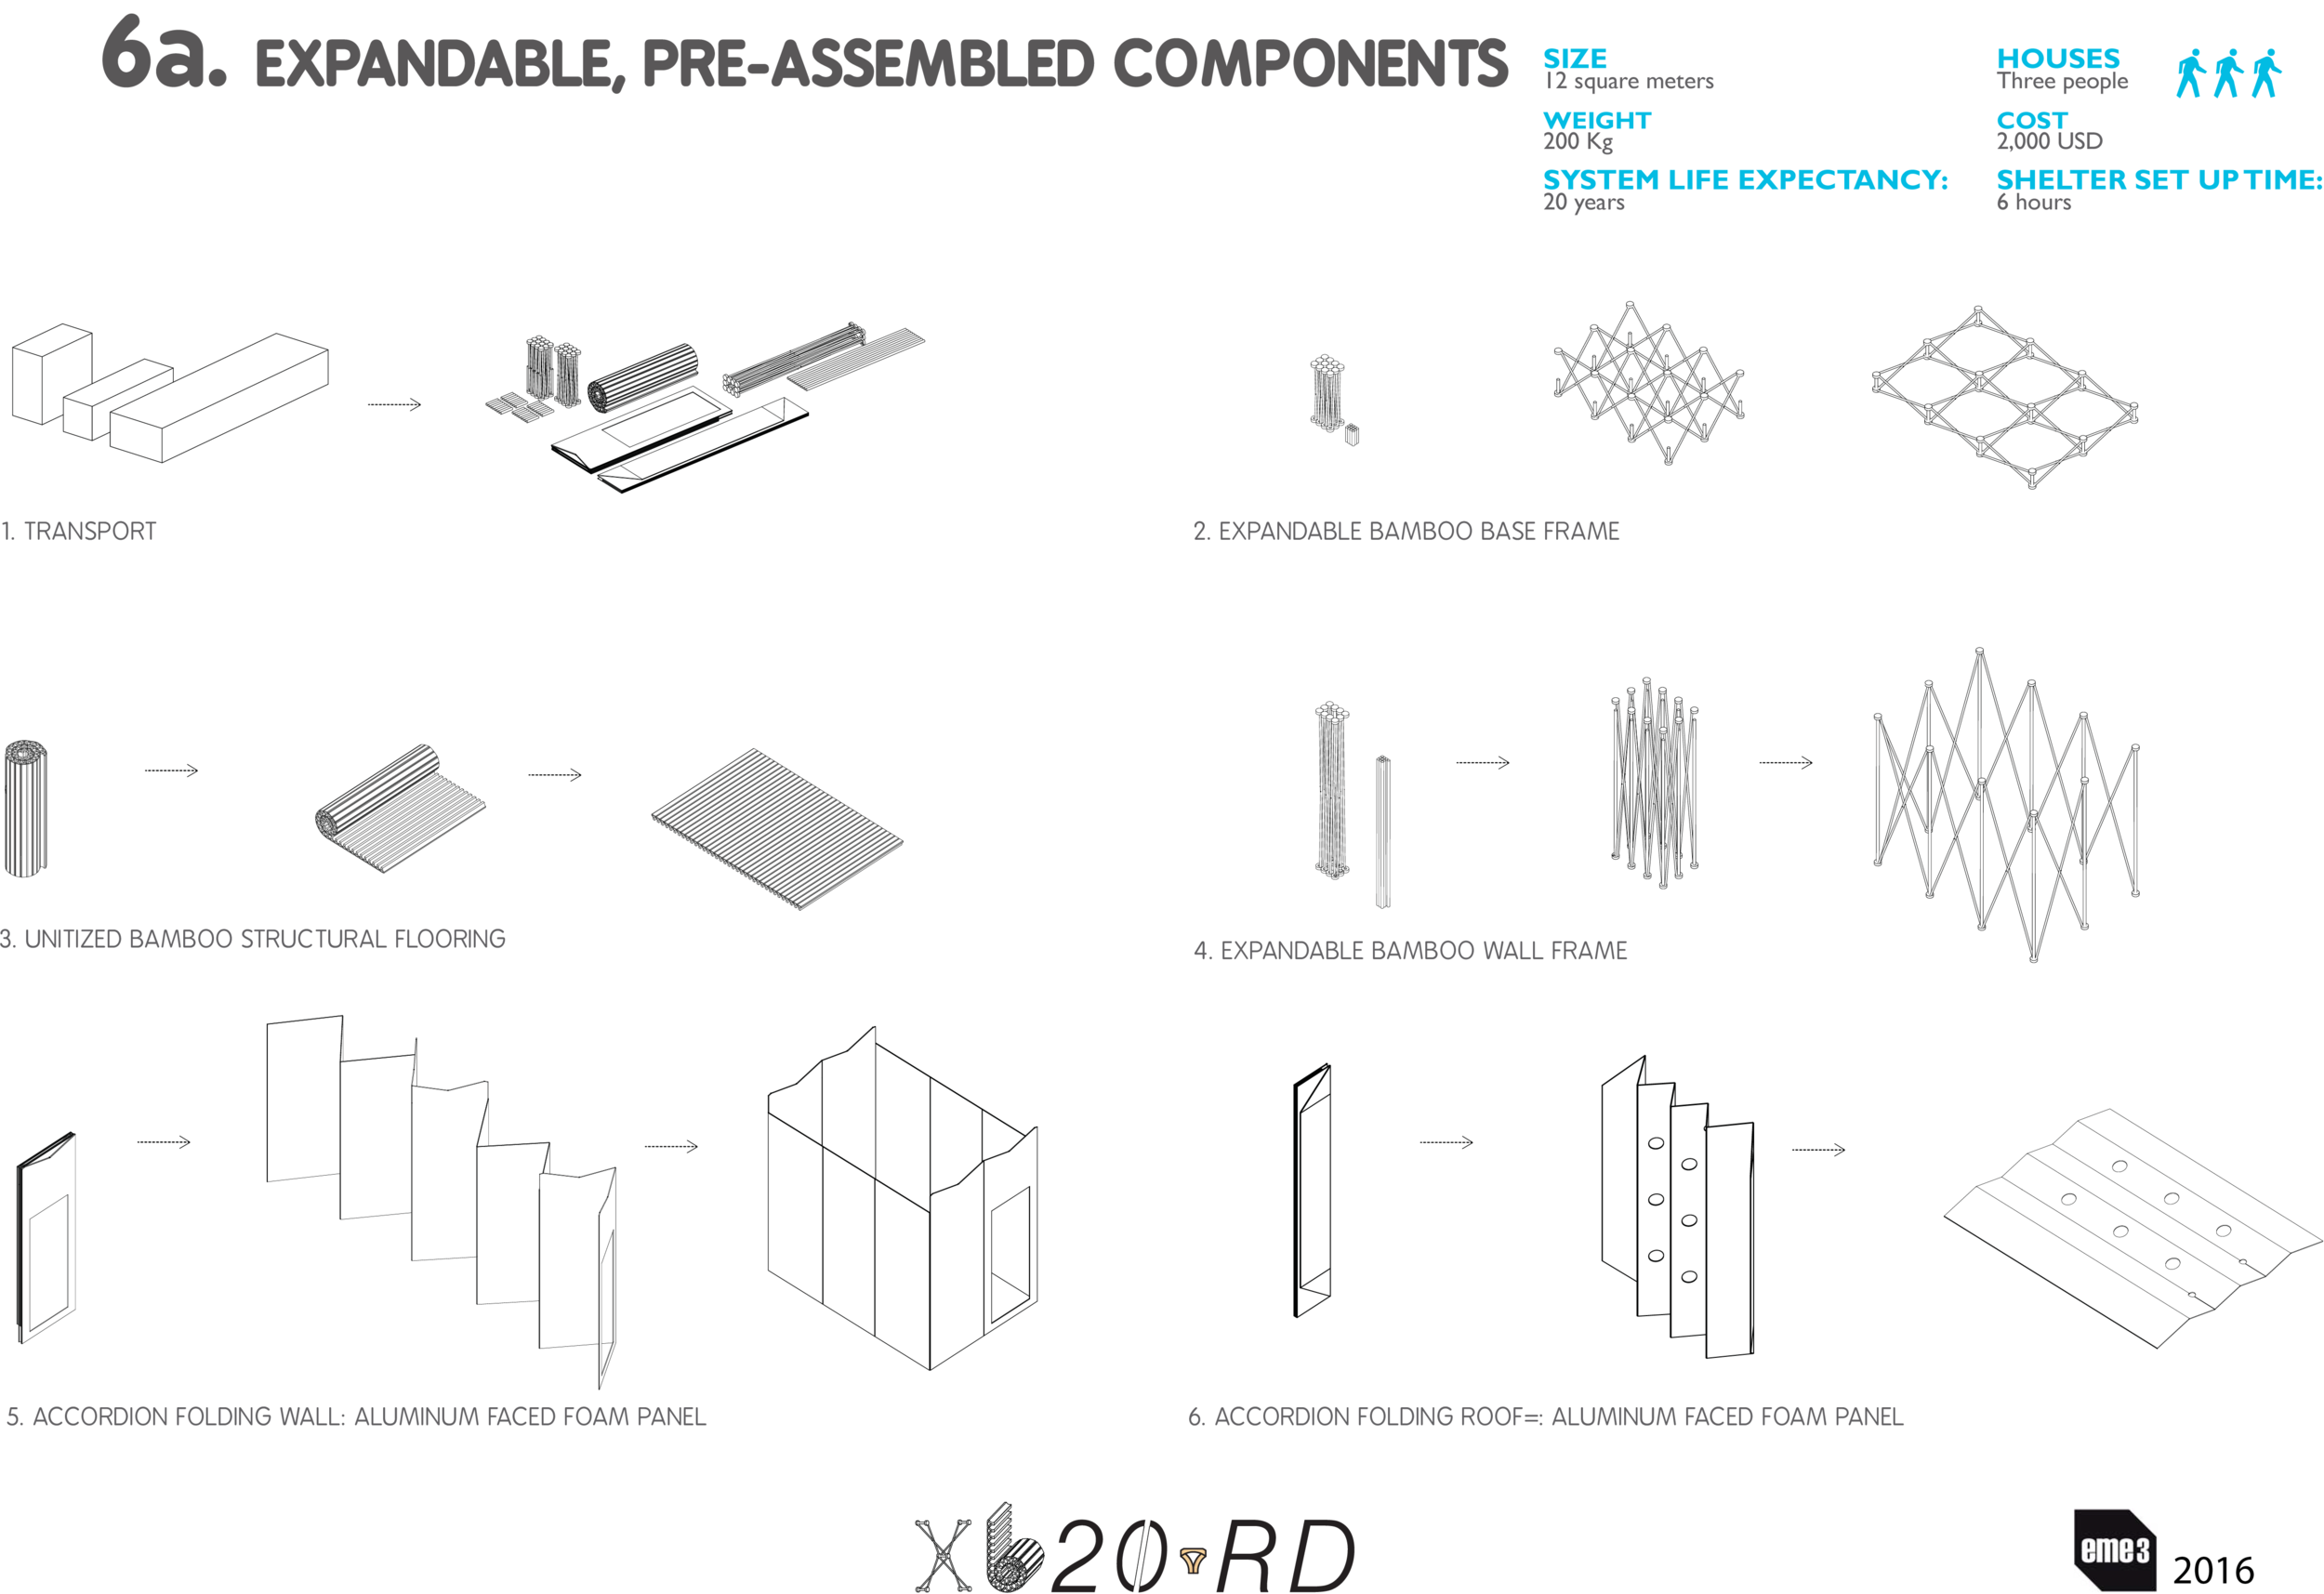 06-A EXANDABLE PRE-ASSEMBLED COMPONENTS.png